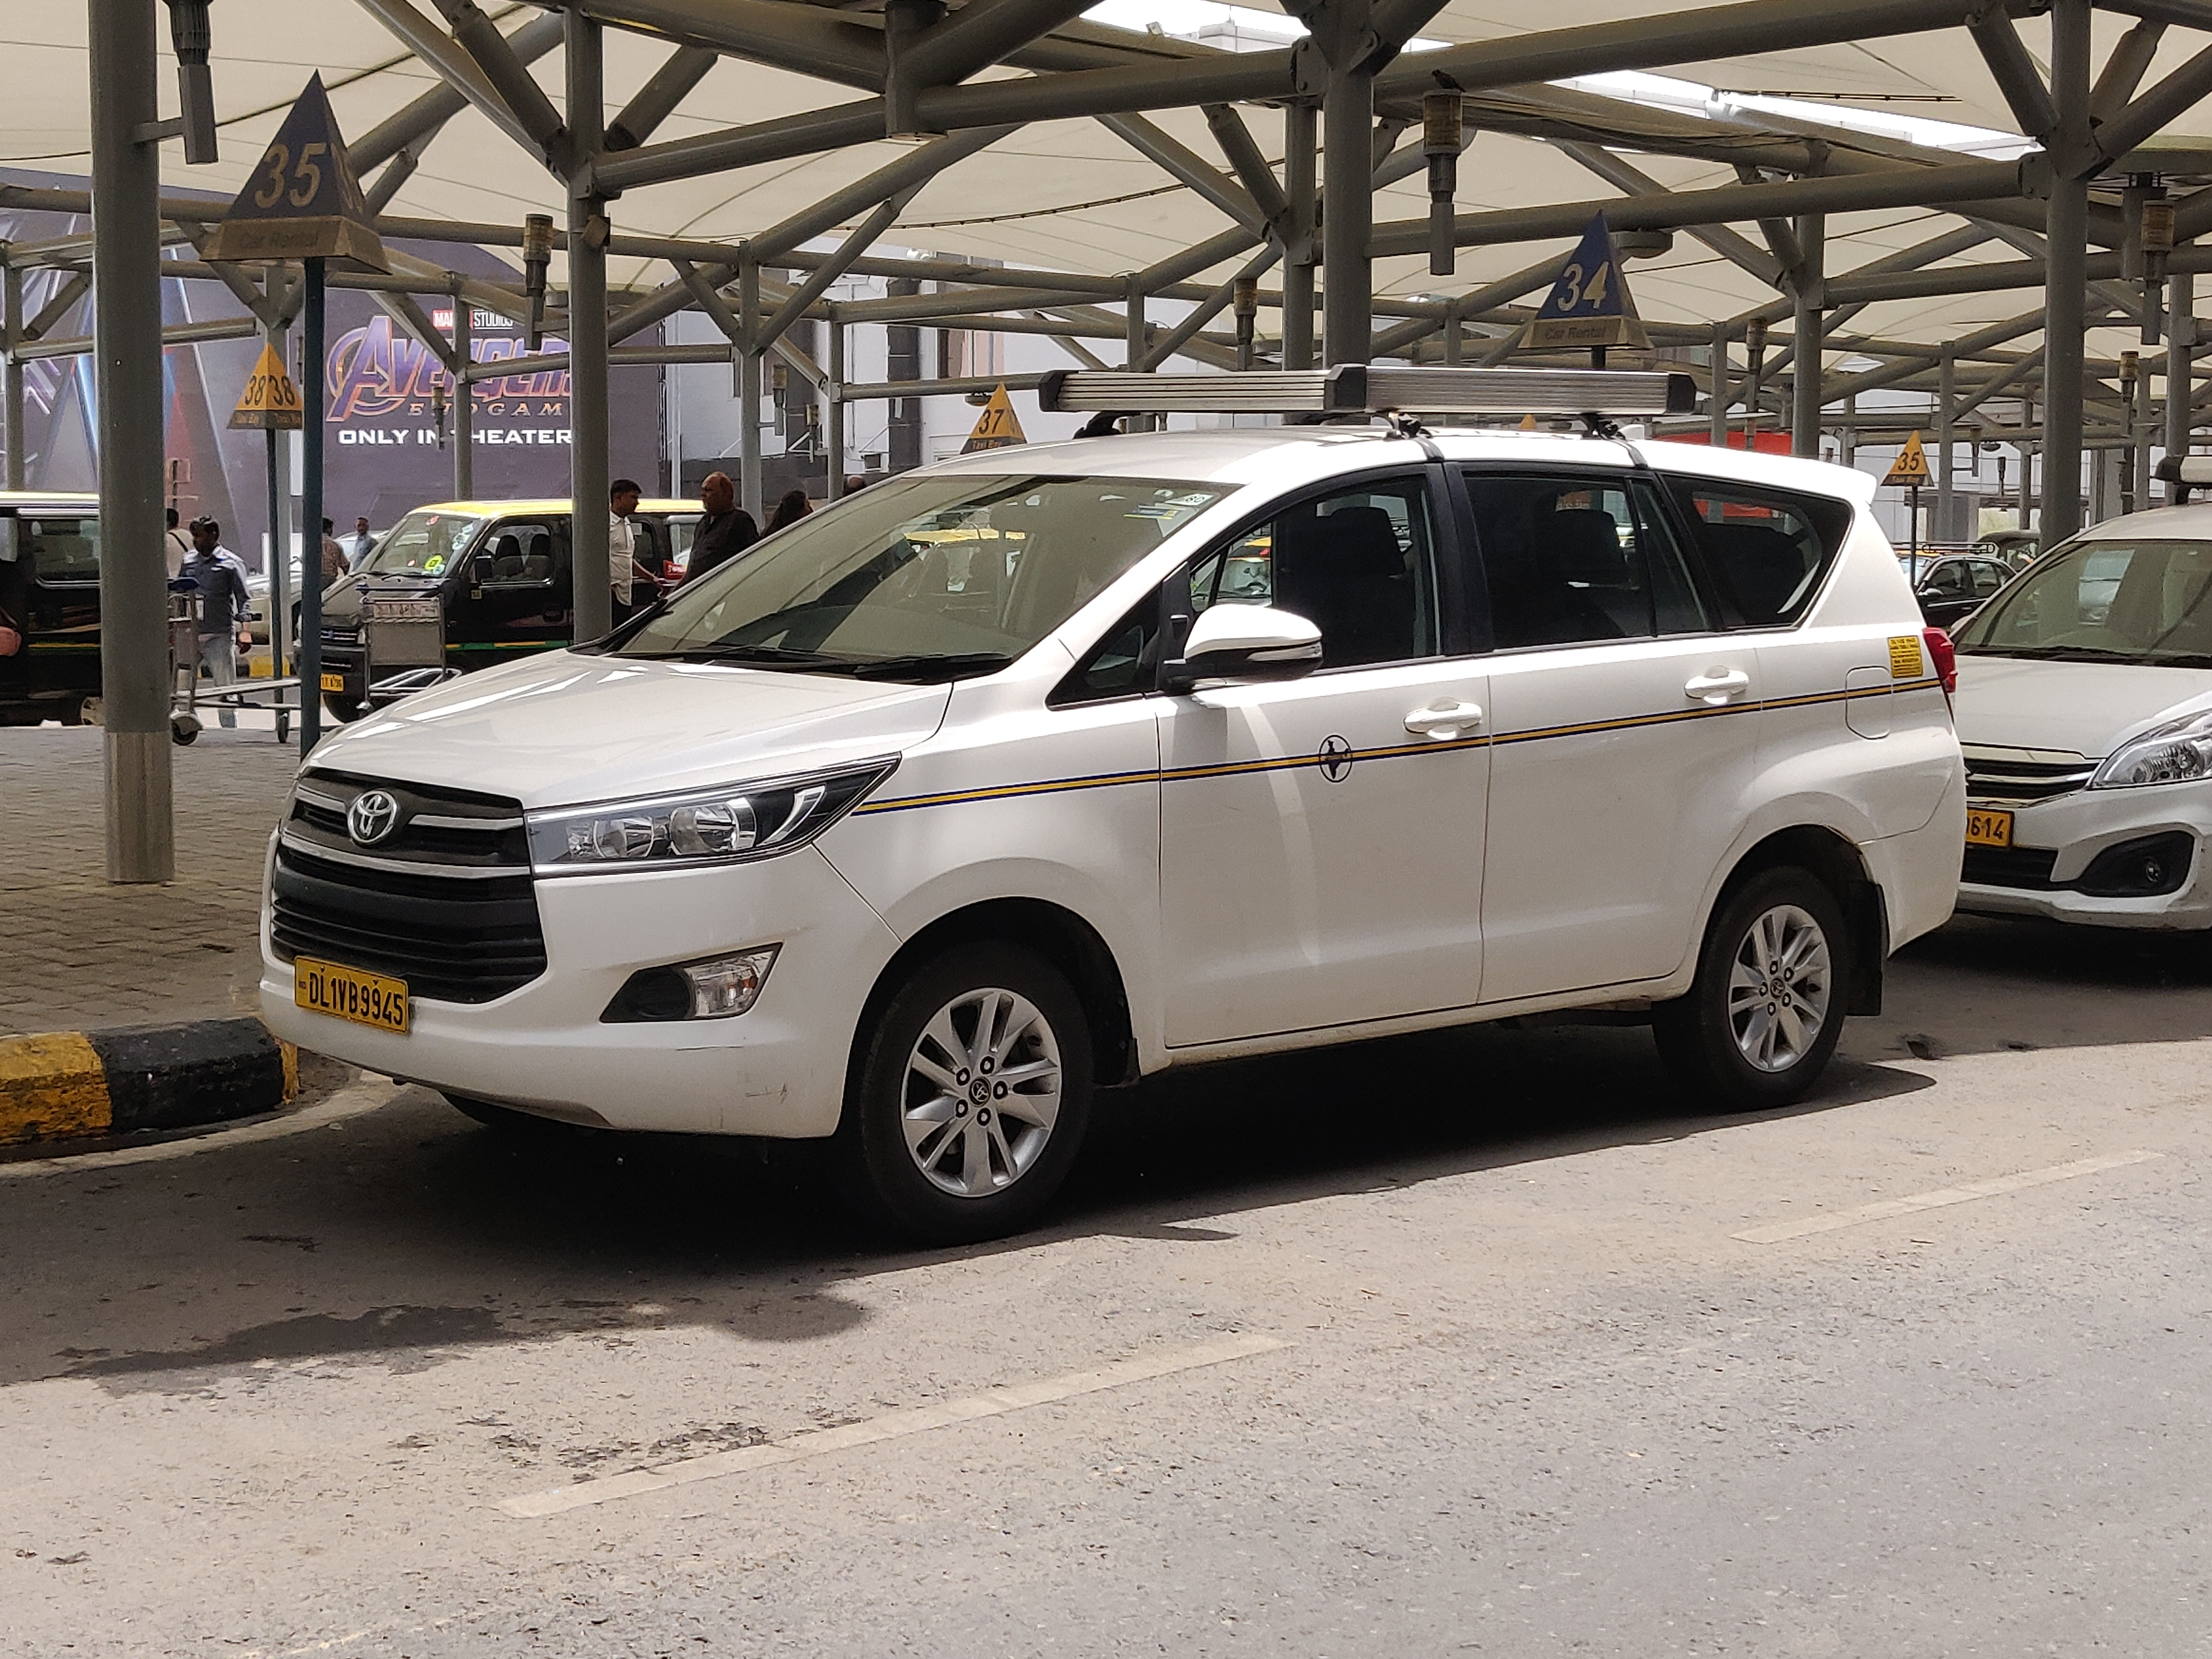 IGI Airport New Delhi: Private Hotel Transfer